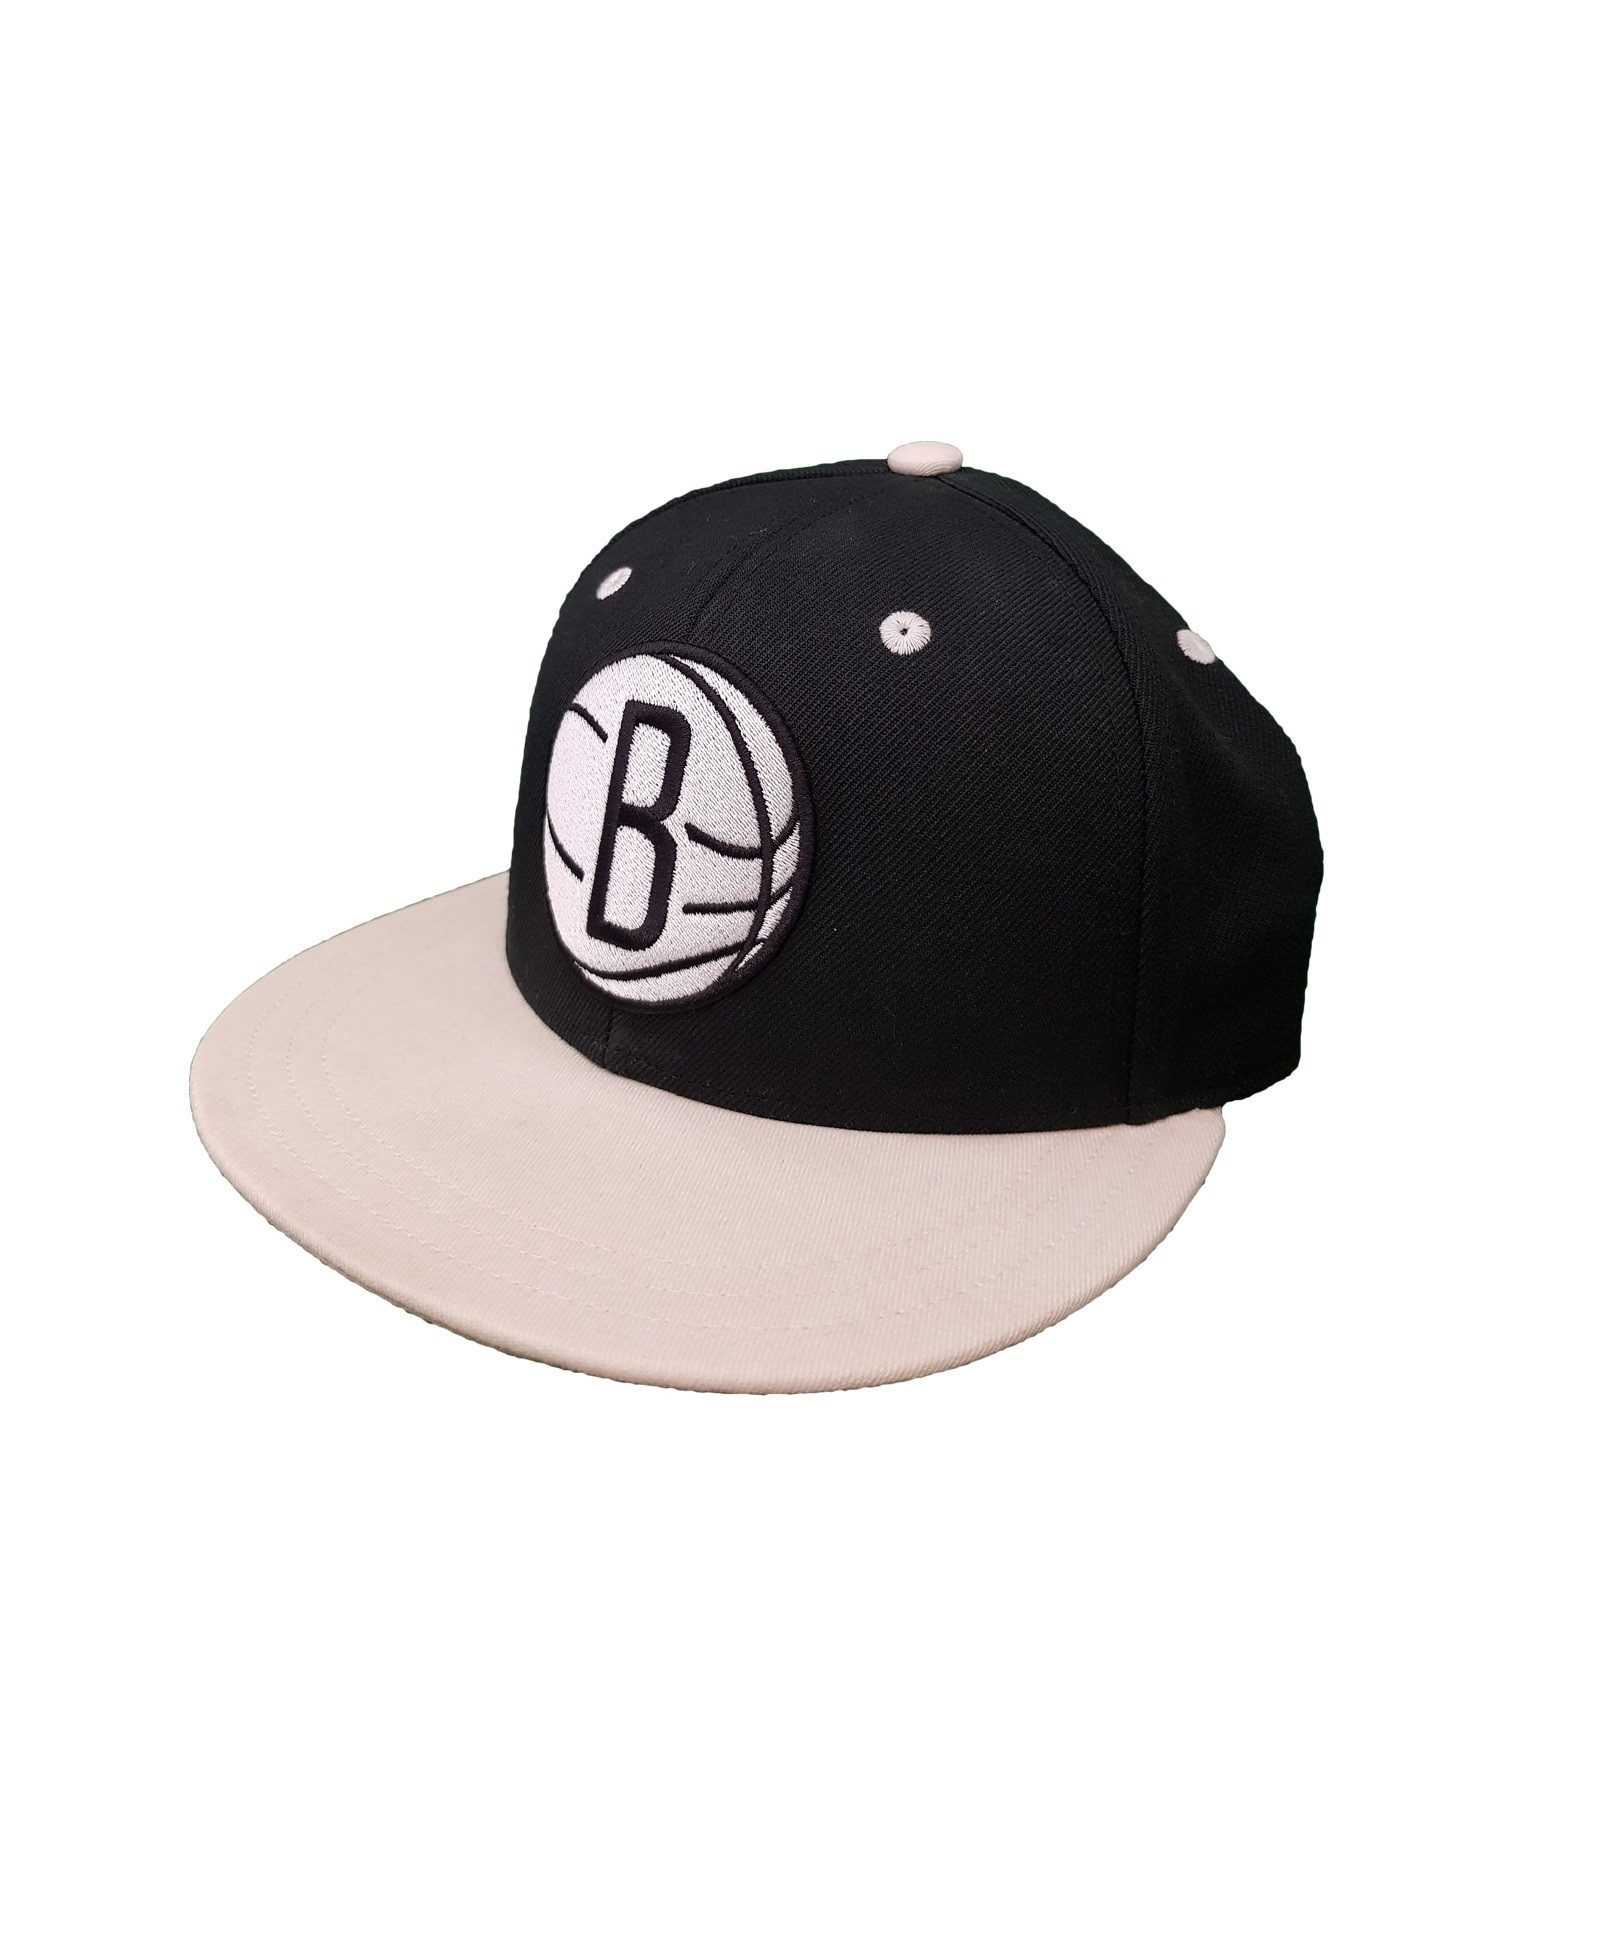 ADIDAS Brooklyn Nets Fitted Vasaras Cepure